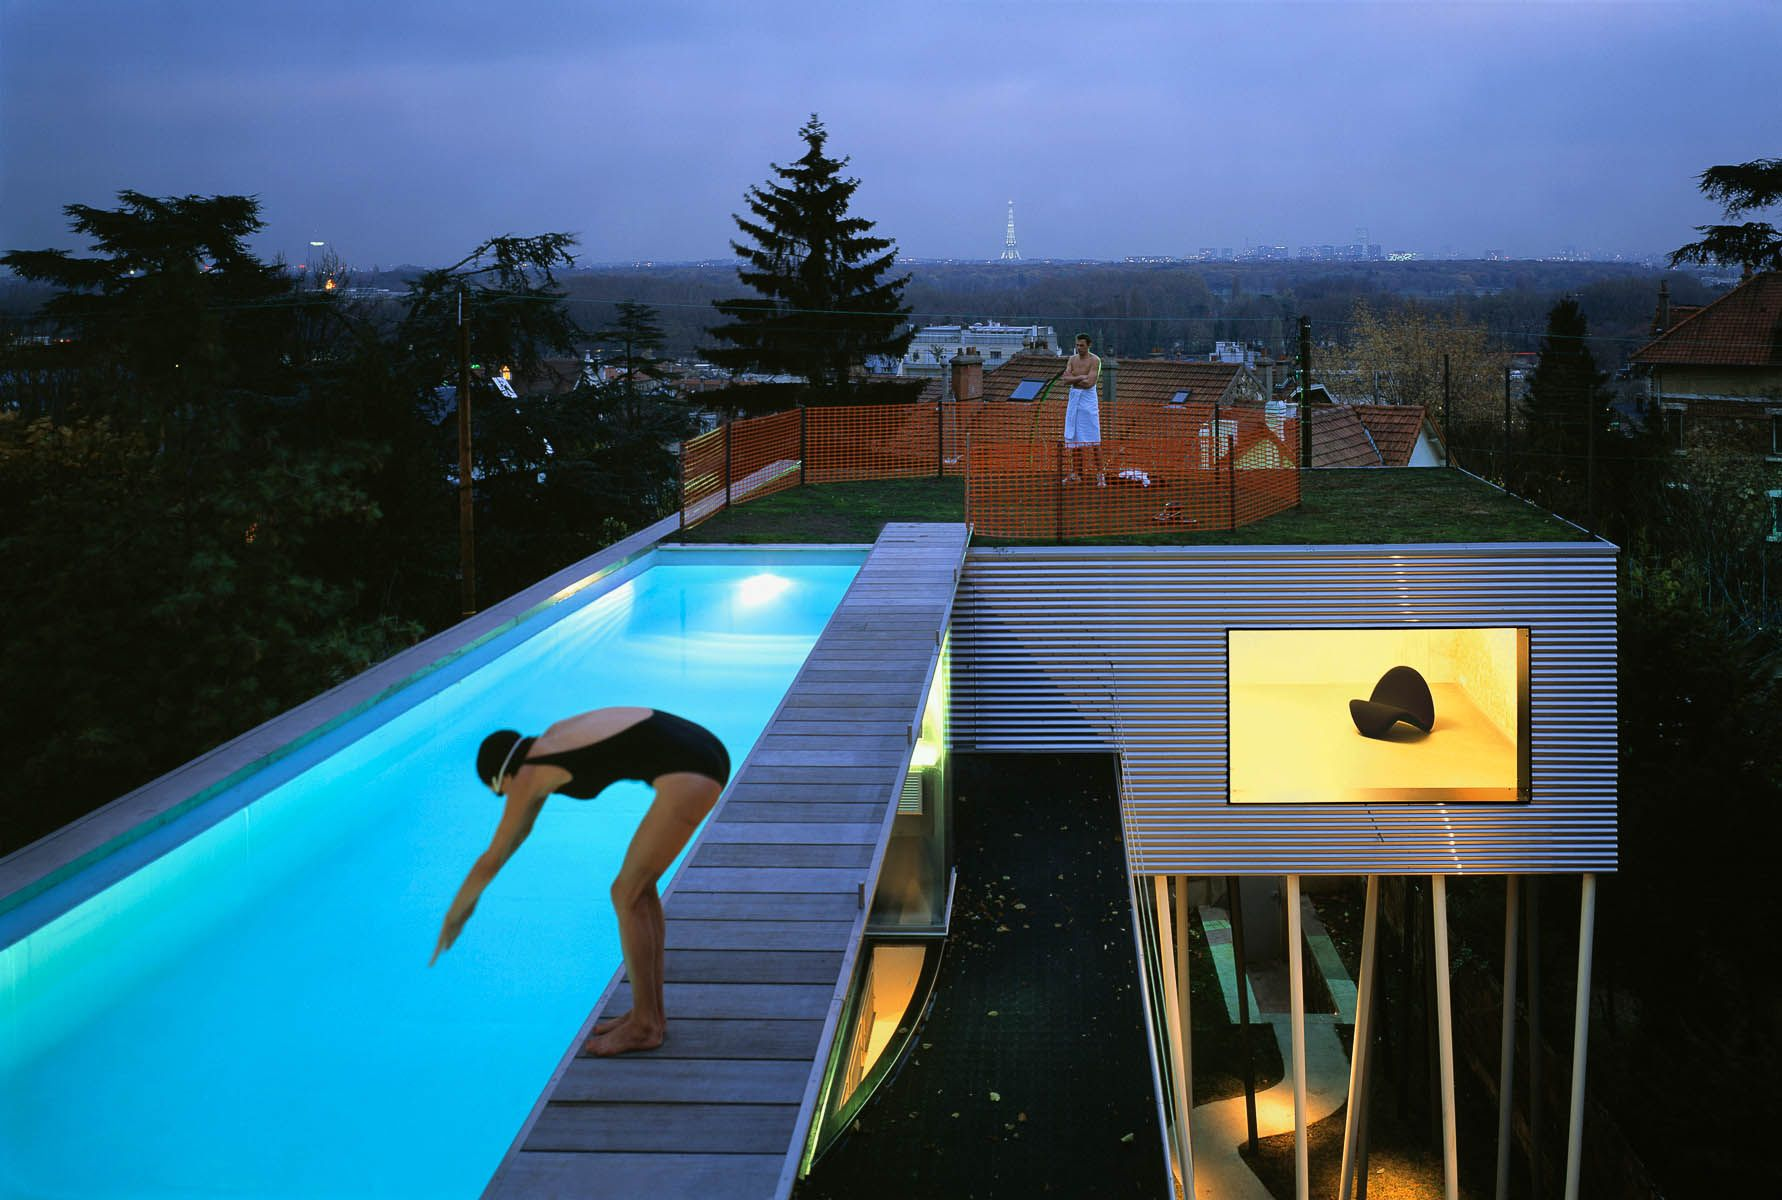 Pool Hanglage Oma, Rem Koolhaus, Villa Dall'ava, Paris, 1991 | Cool Swimming Pools, Building A Container Home, Rooftop Pool